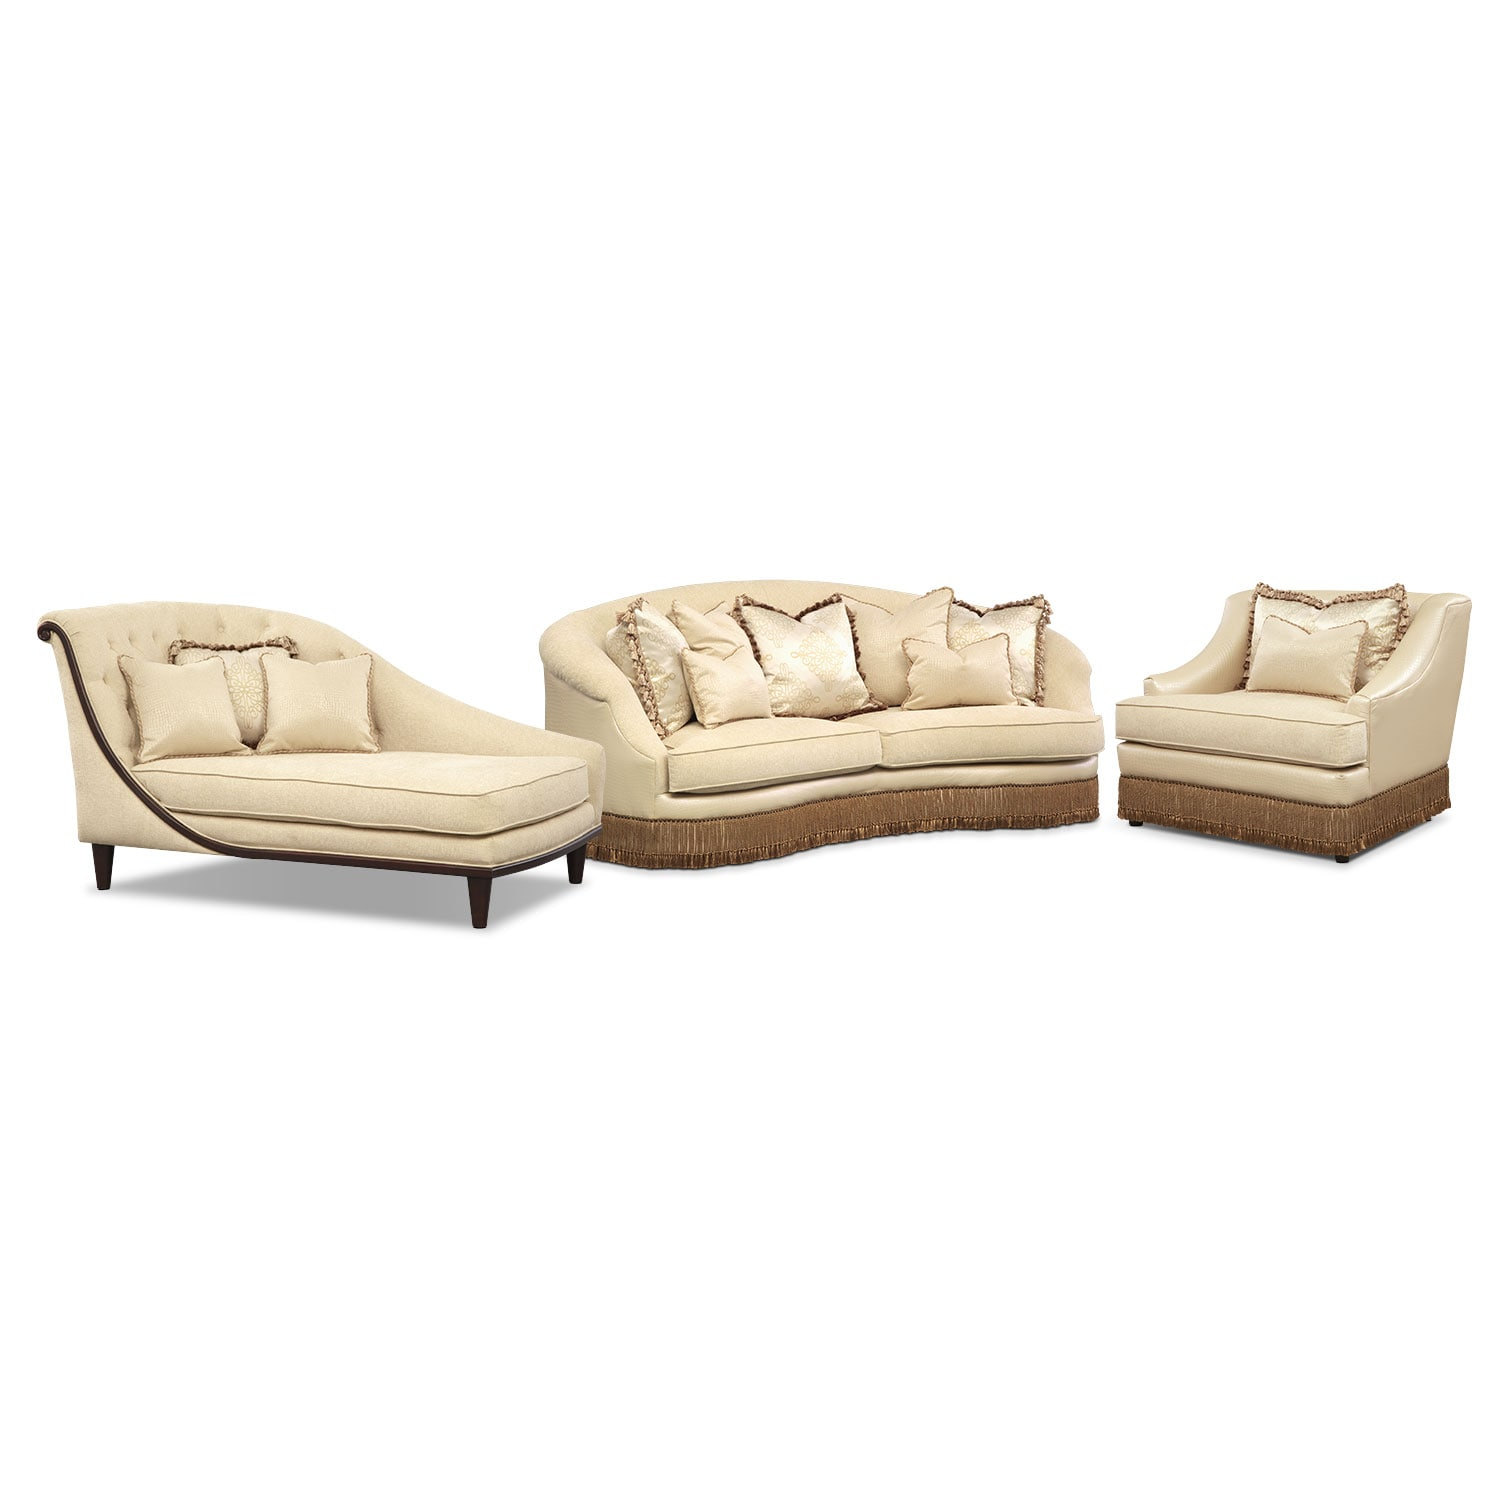 Living Room Furniture - Vivienne 3 Pc. Living Room w/Chair and Chaise